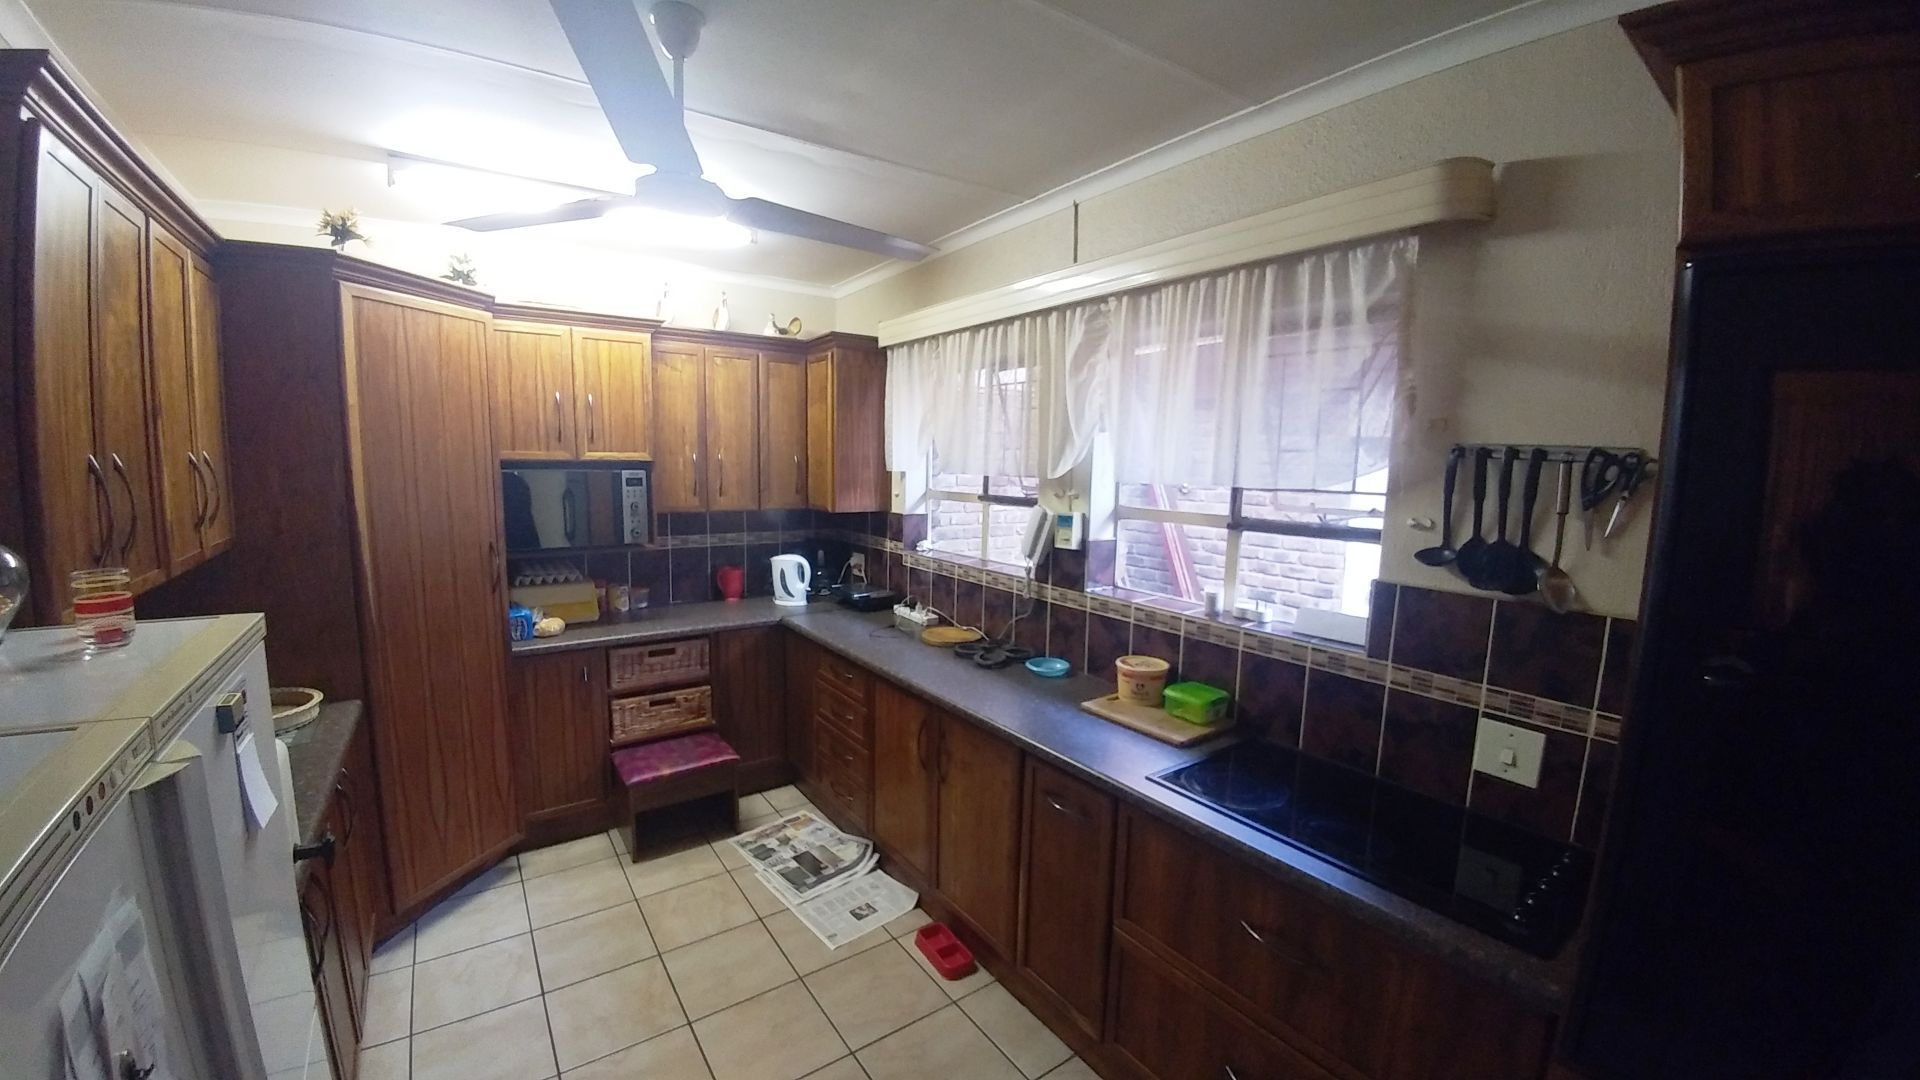 Potchefstroom Central property for sale. Ref No: 13508234. Picture no 11